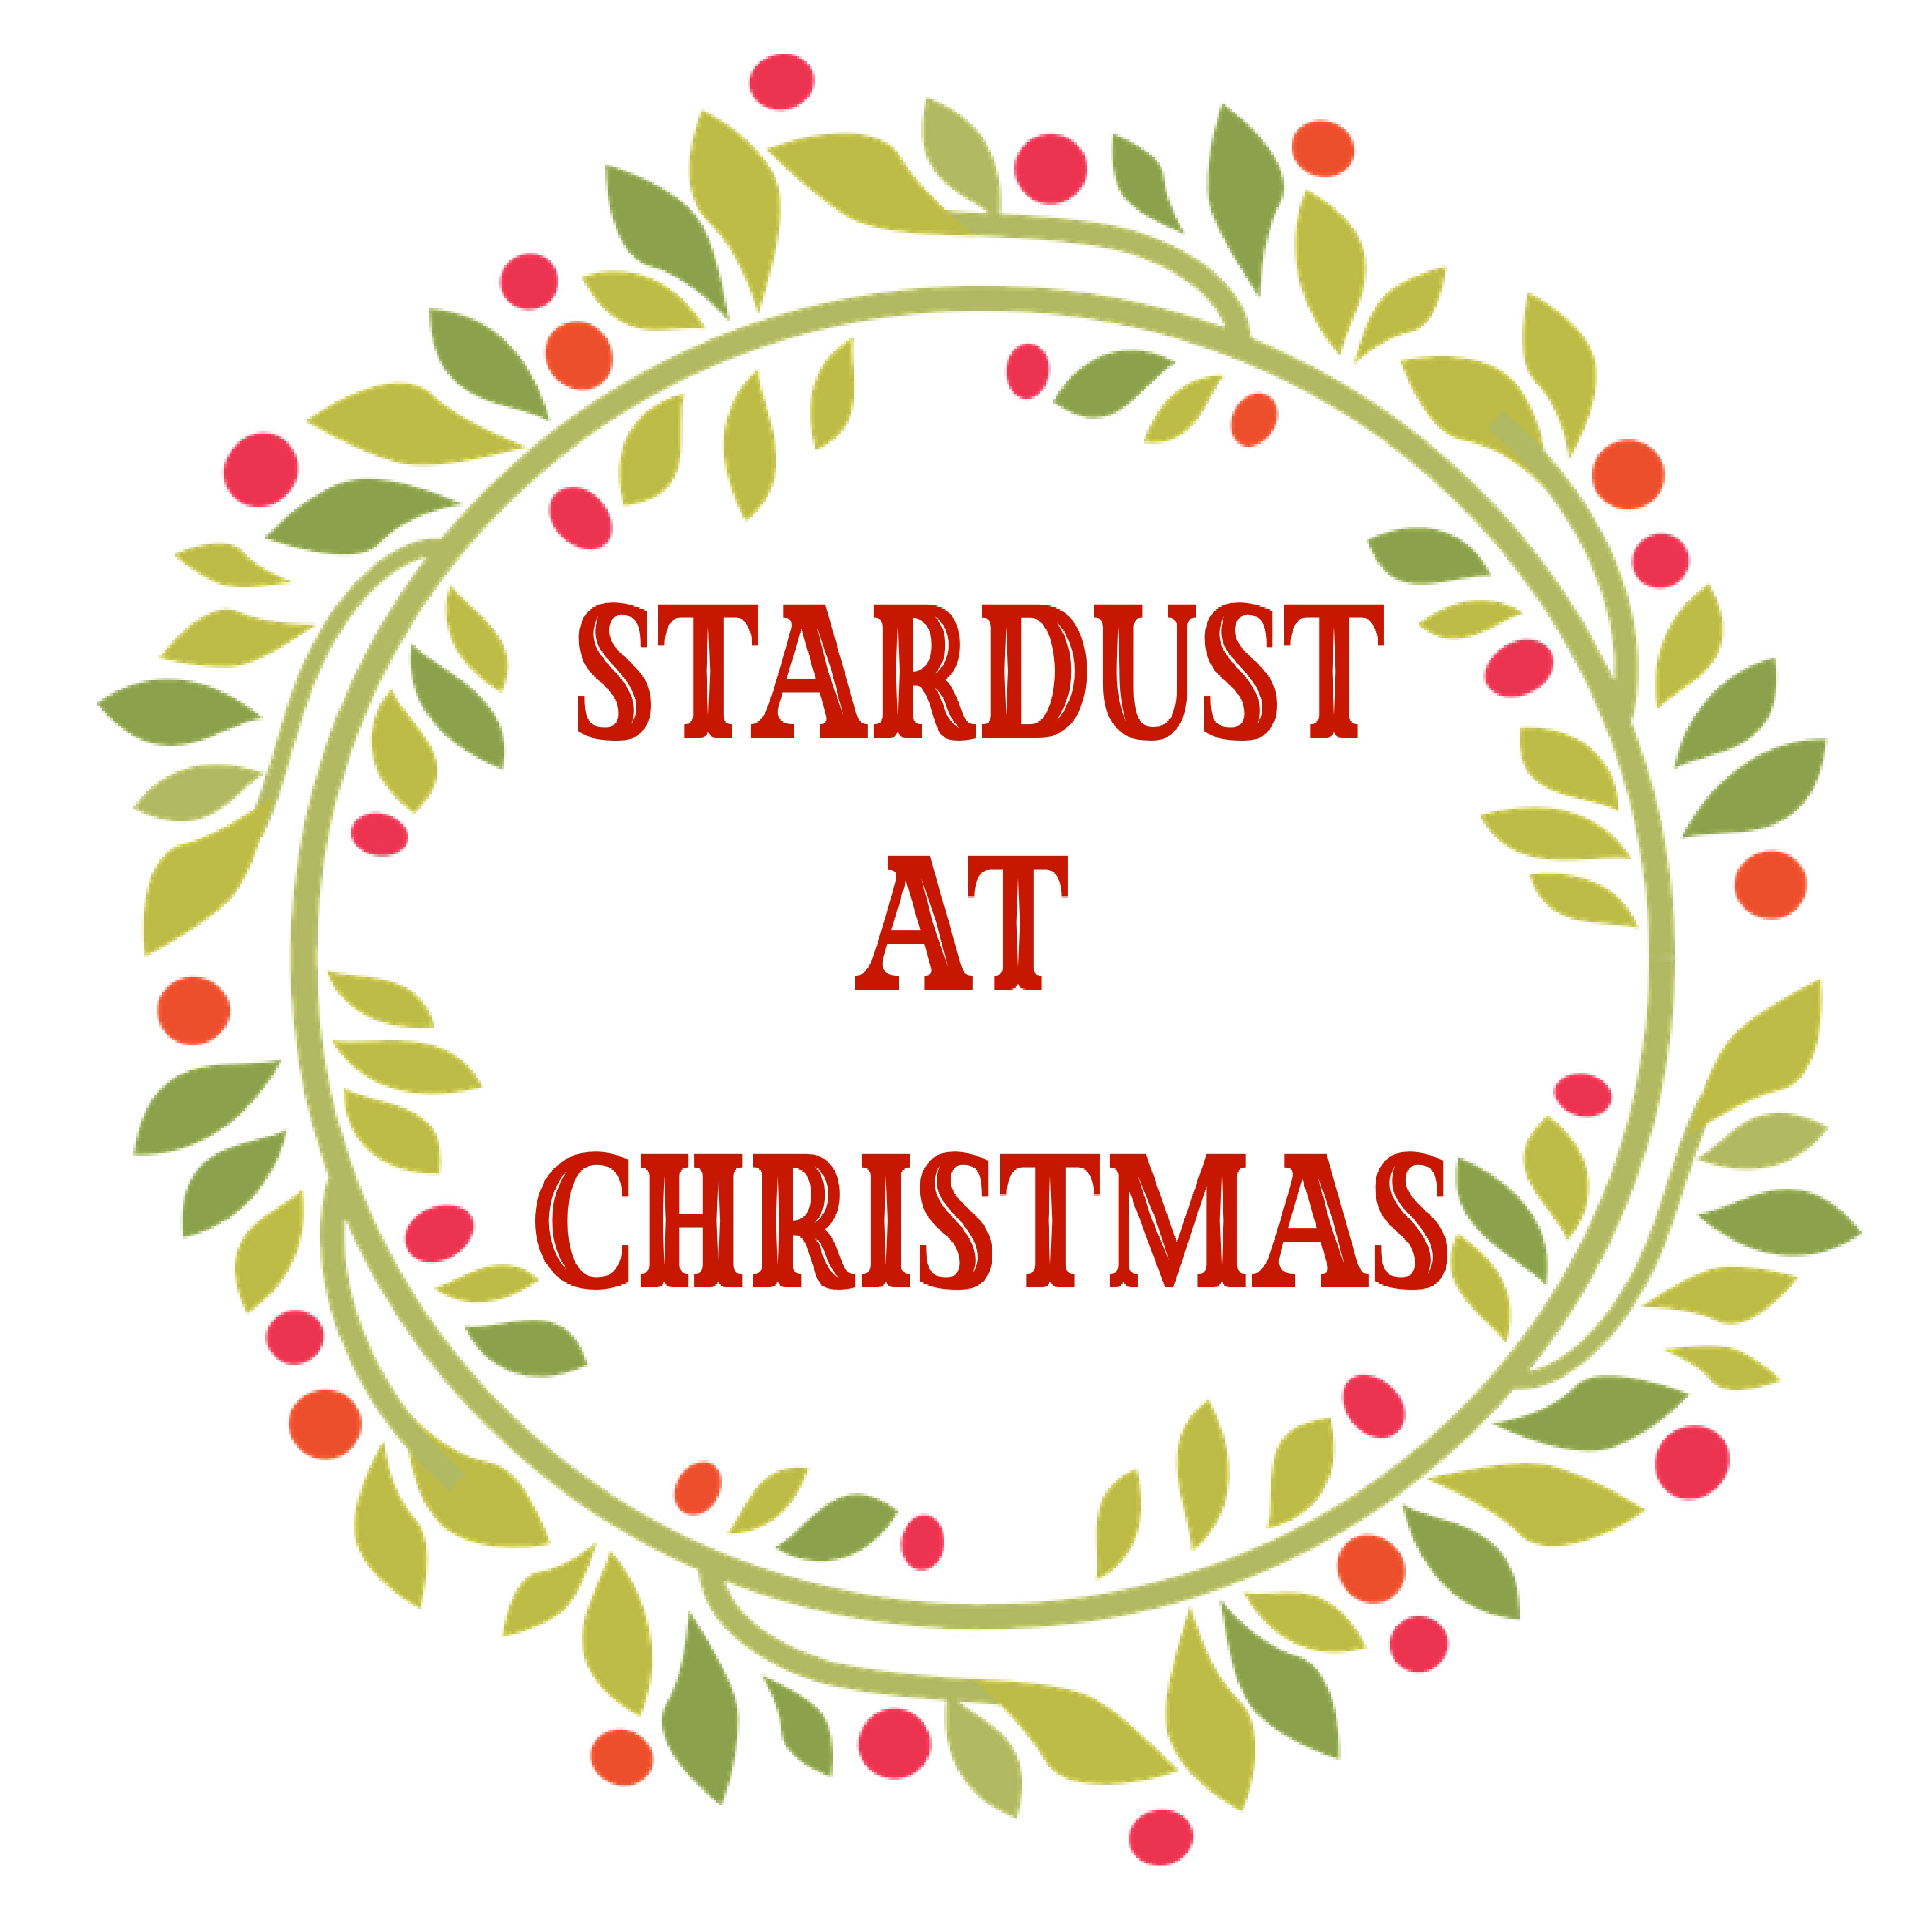 Stardust At Christmas